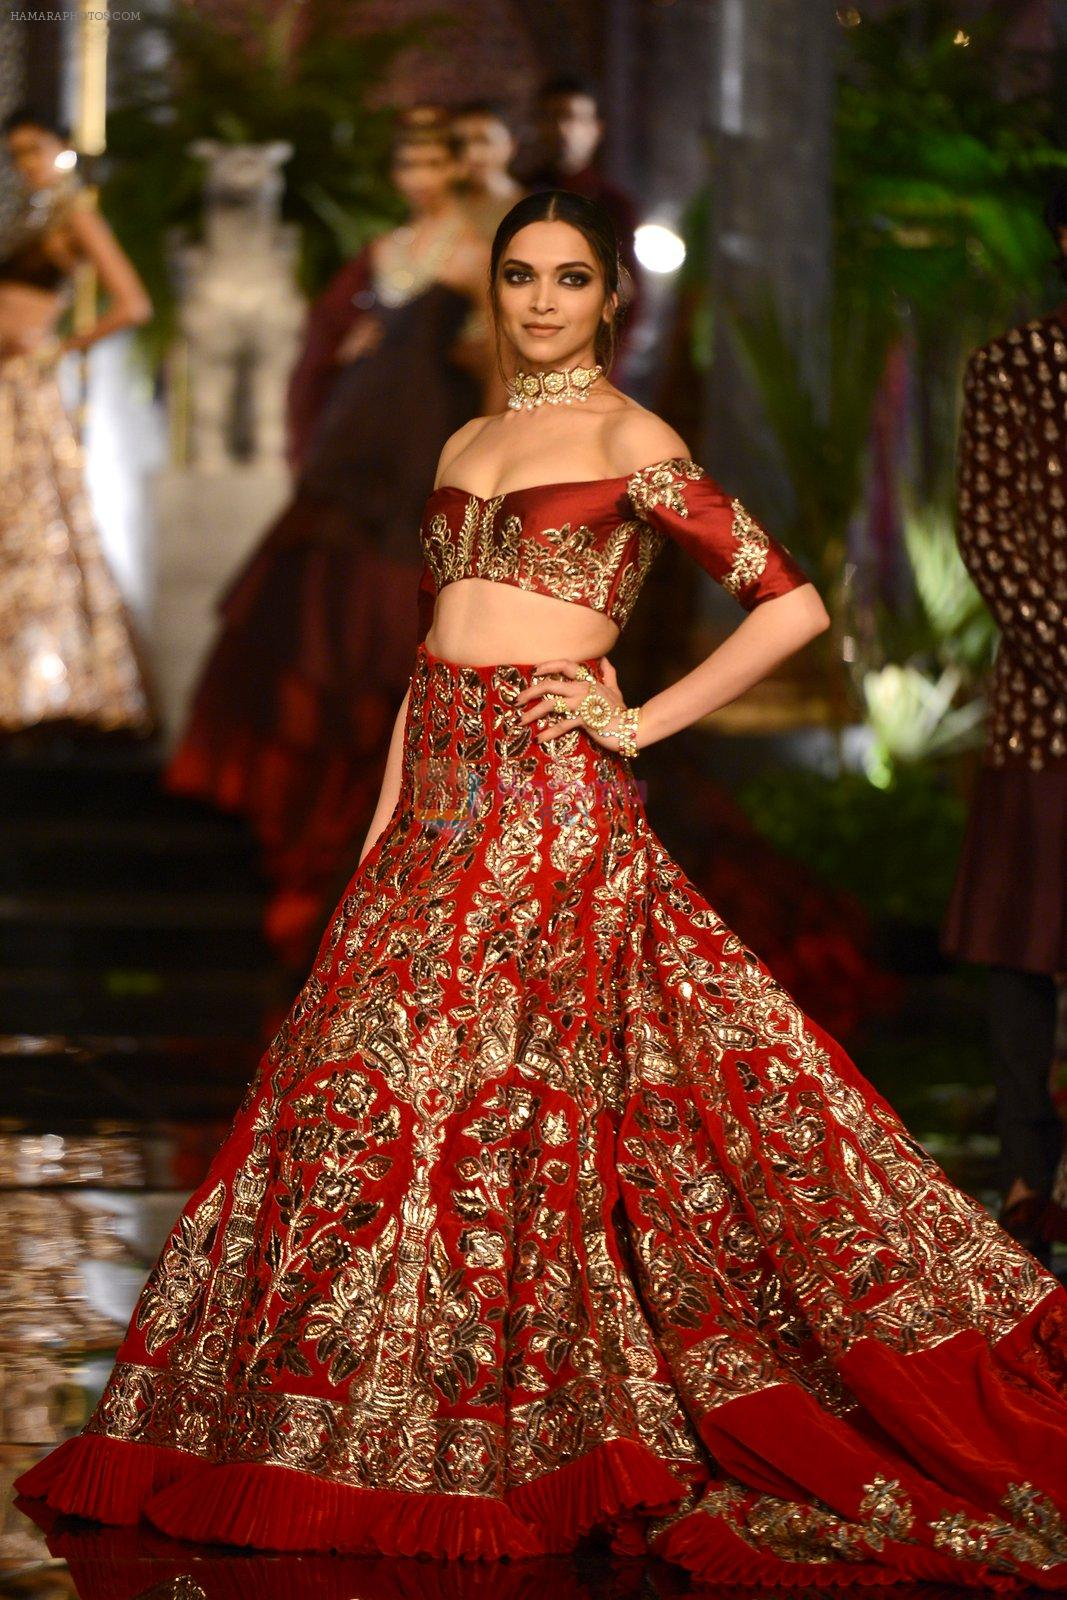 Check out her lehenga!